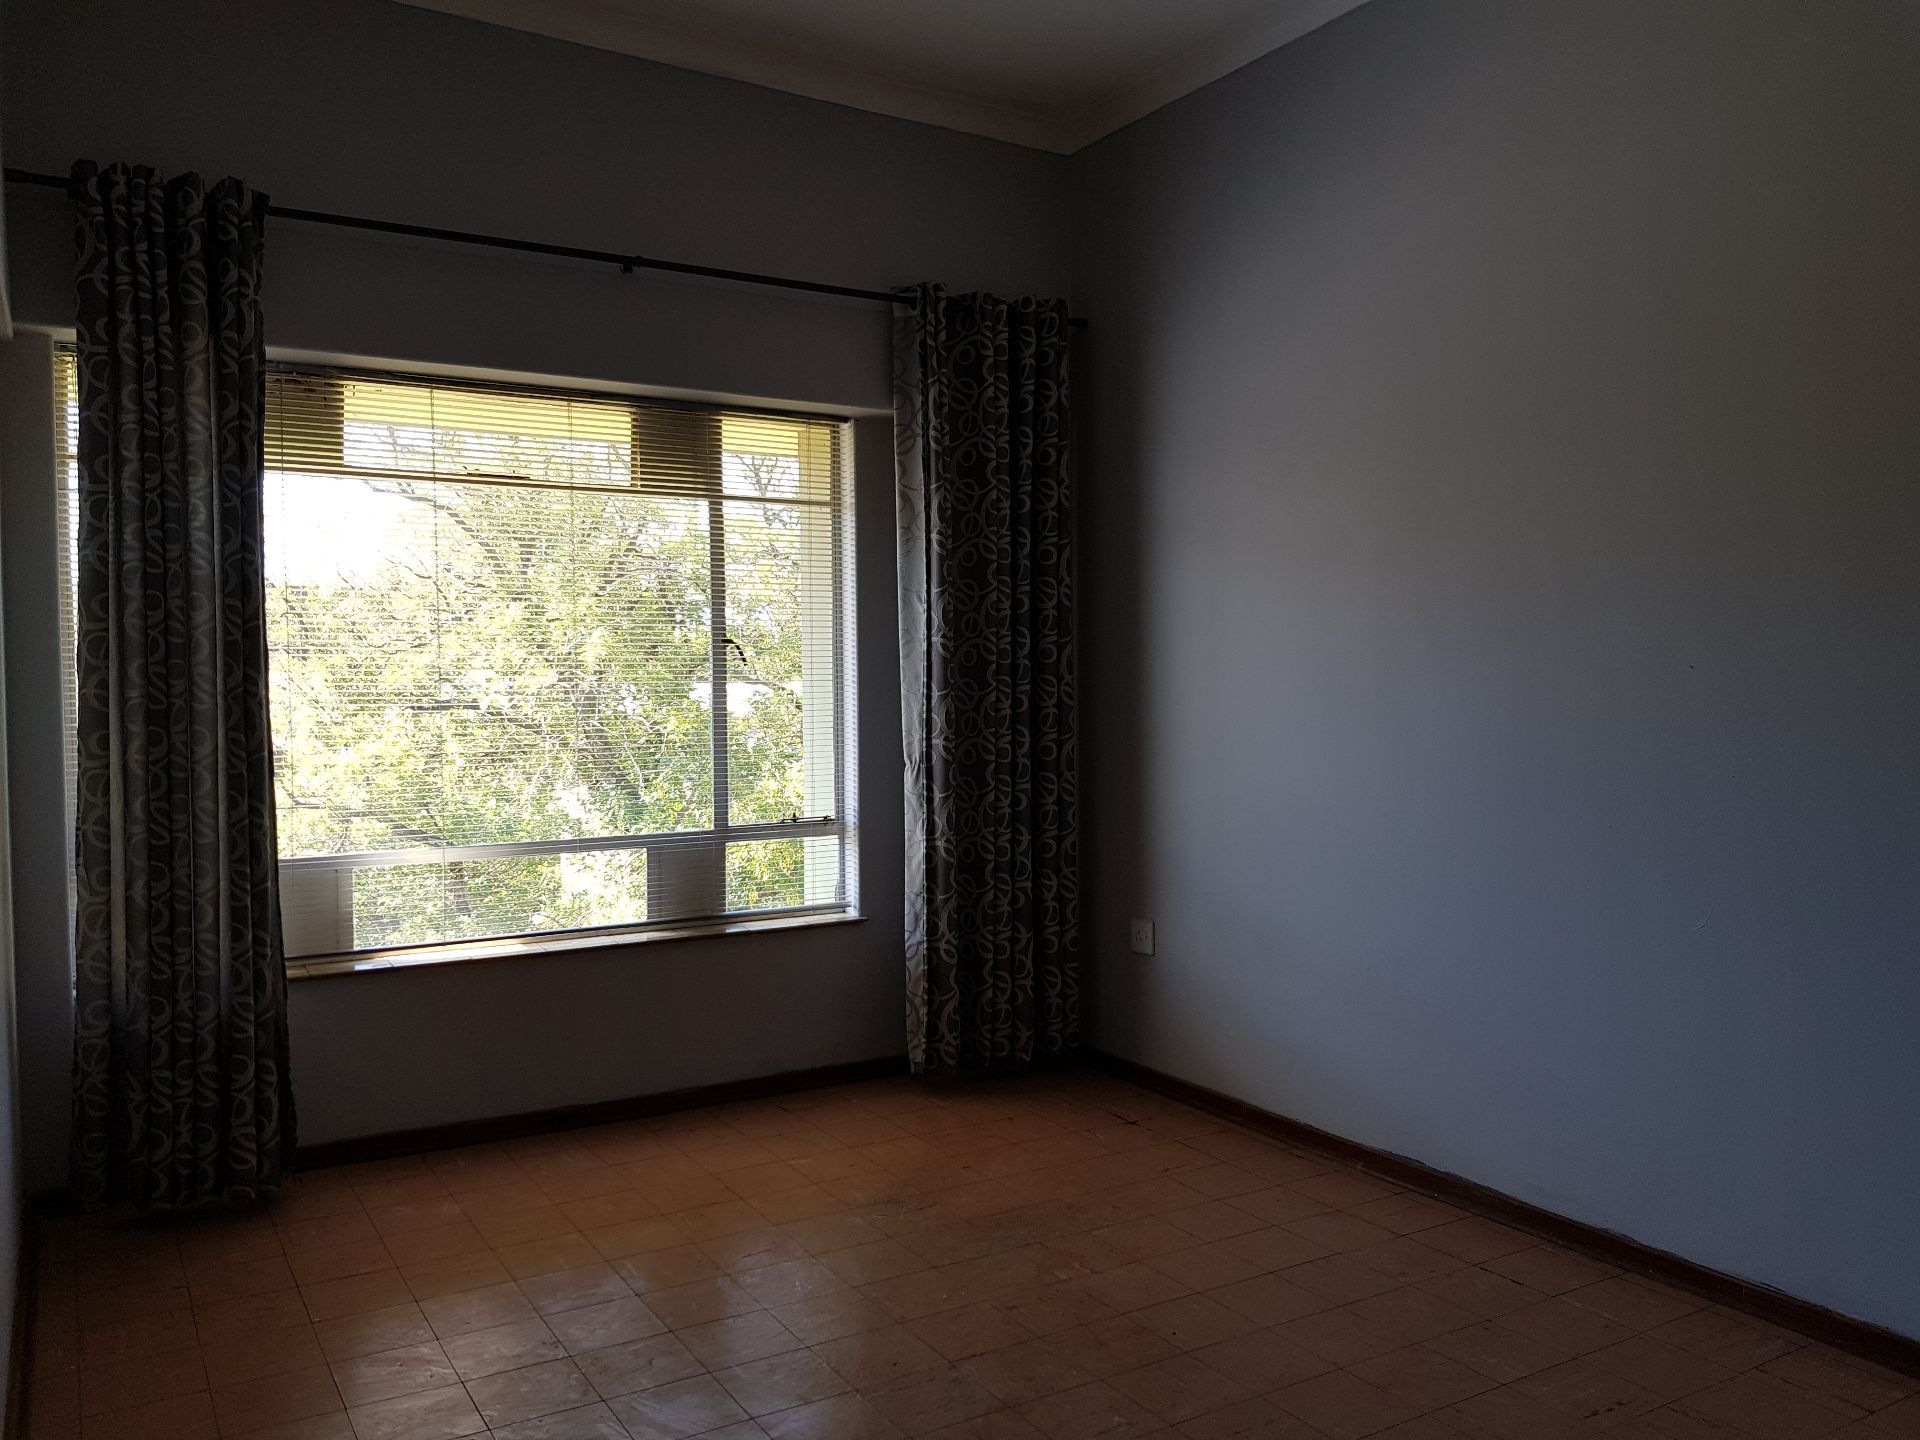 Potchefstroom Central property for sale. Ref No: 13526102. Picture no 14